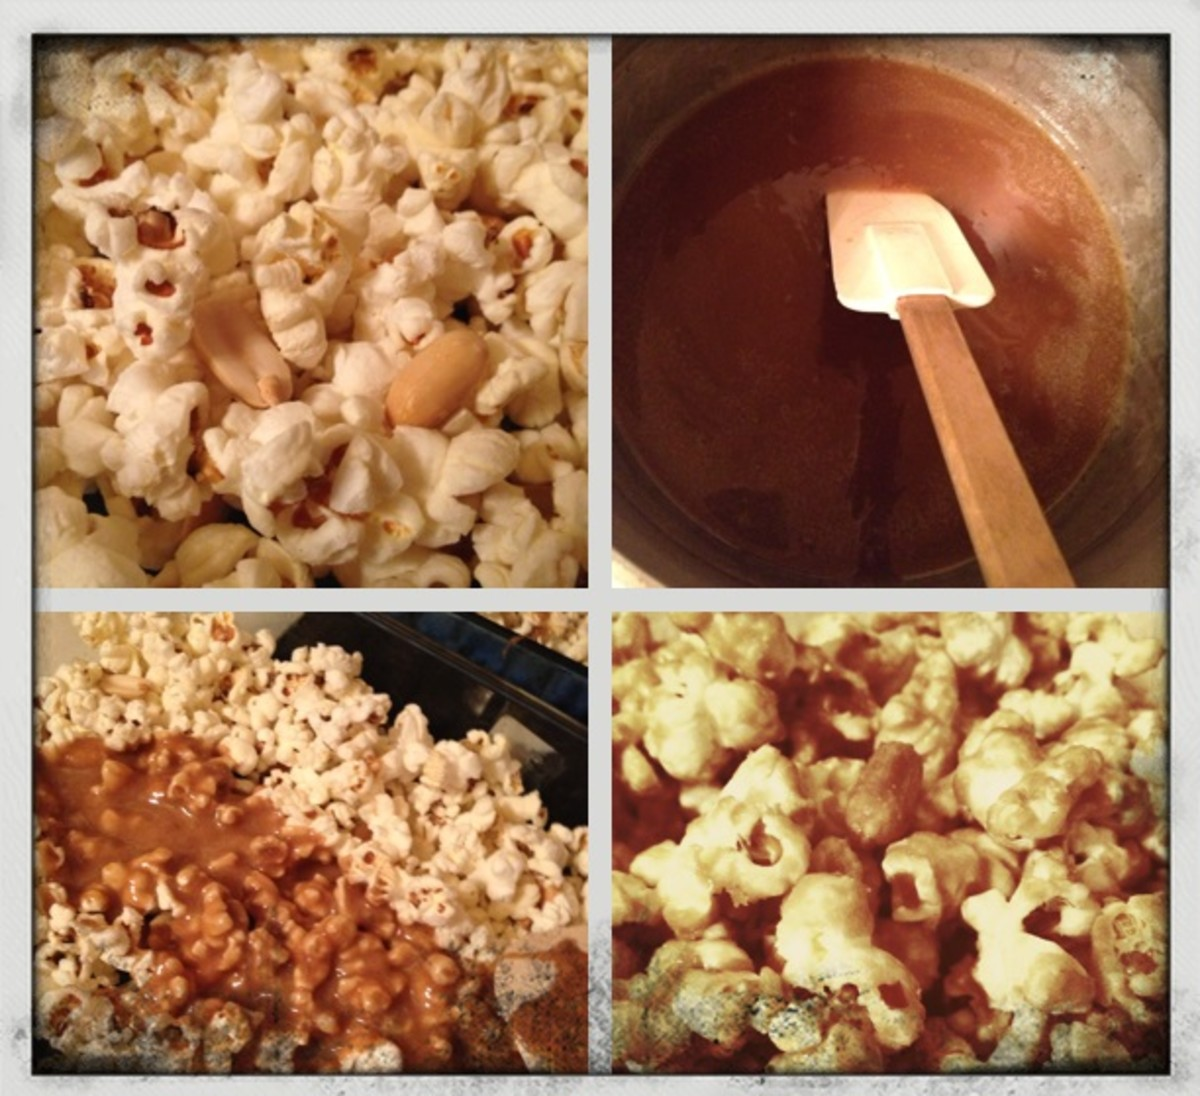 Homemade caramel popcorn is a great snack for movie night, anytime the kids are having friends over or when you just want a treat to cure that sweet tooth.